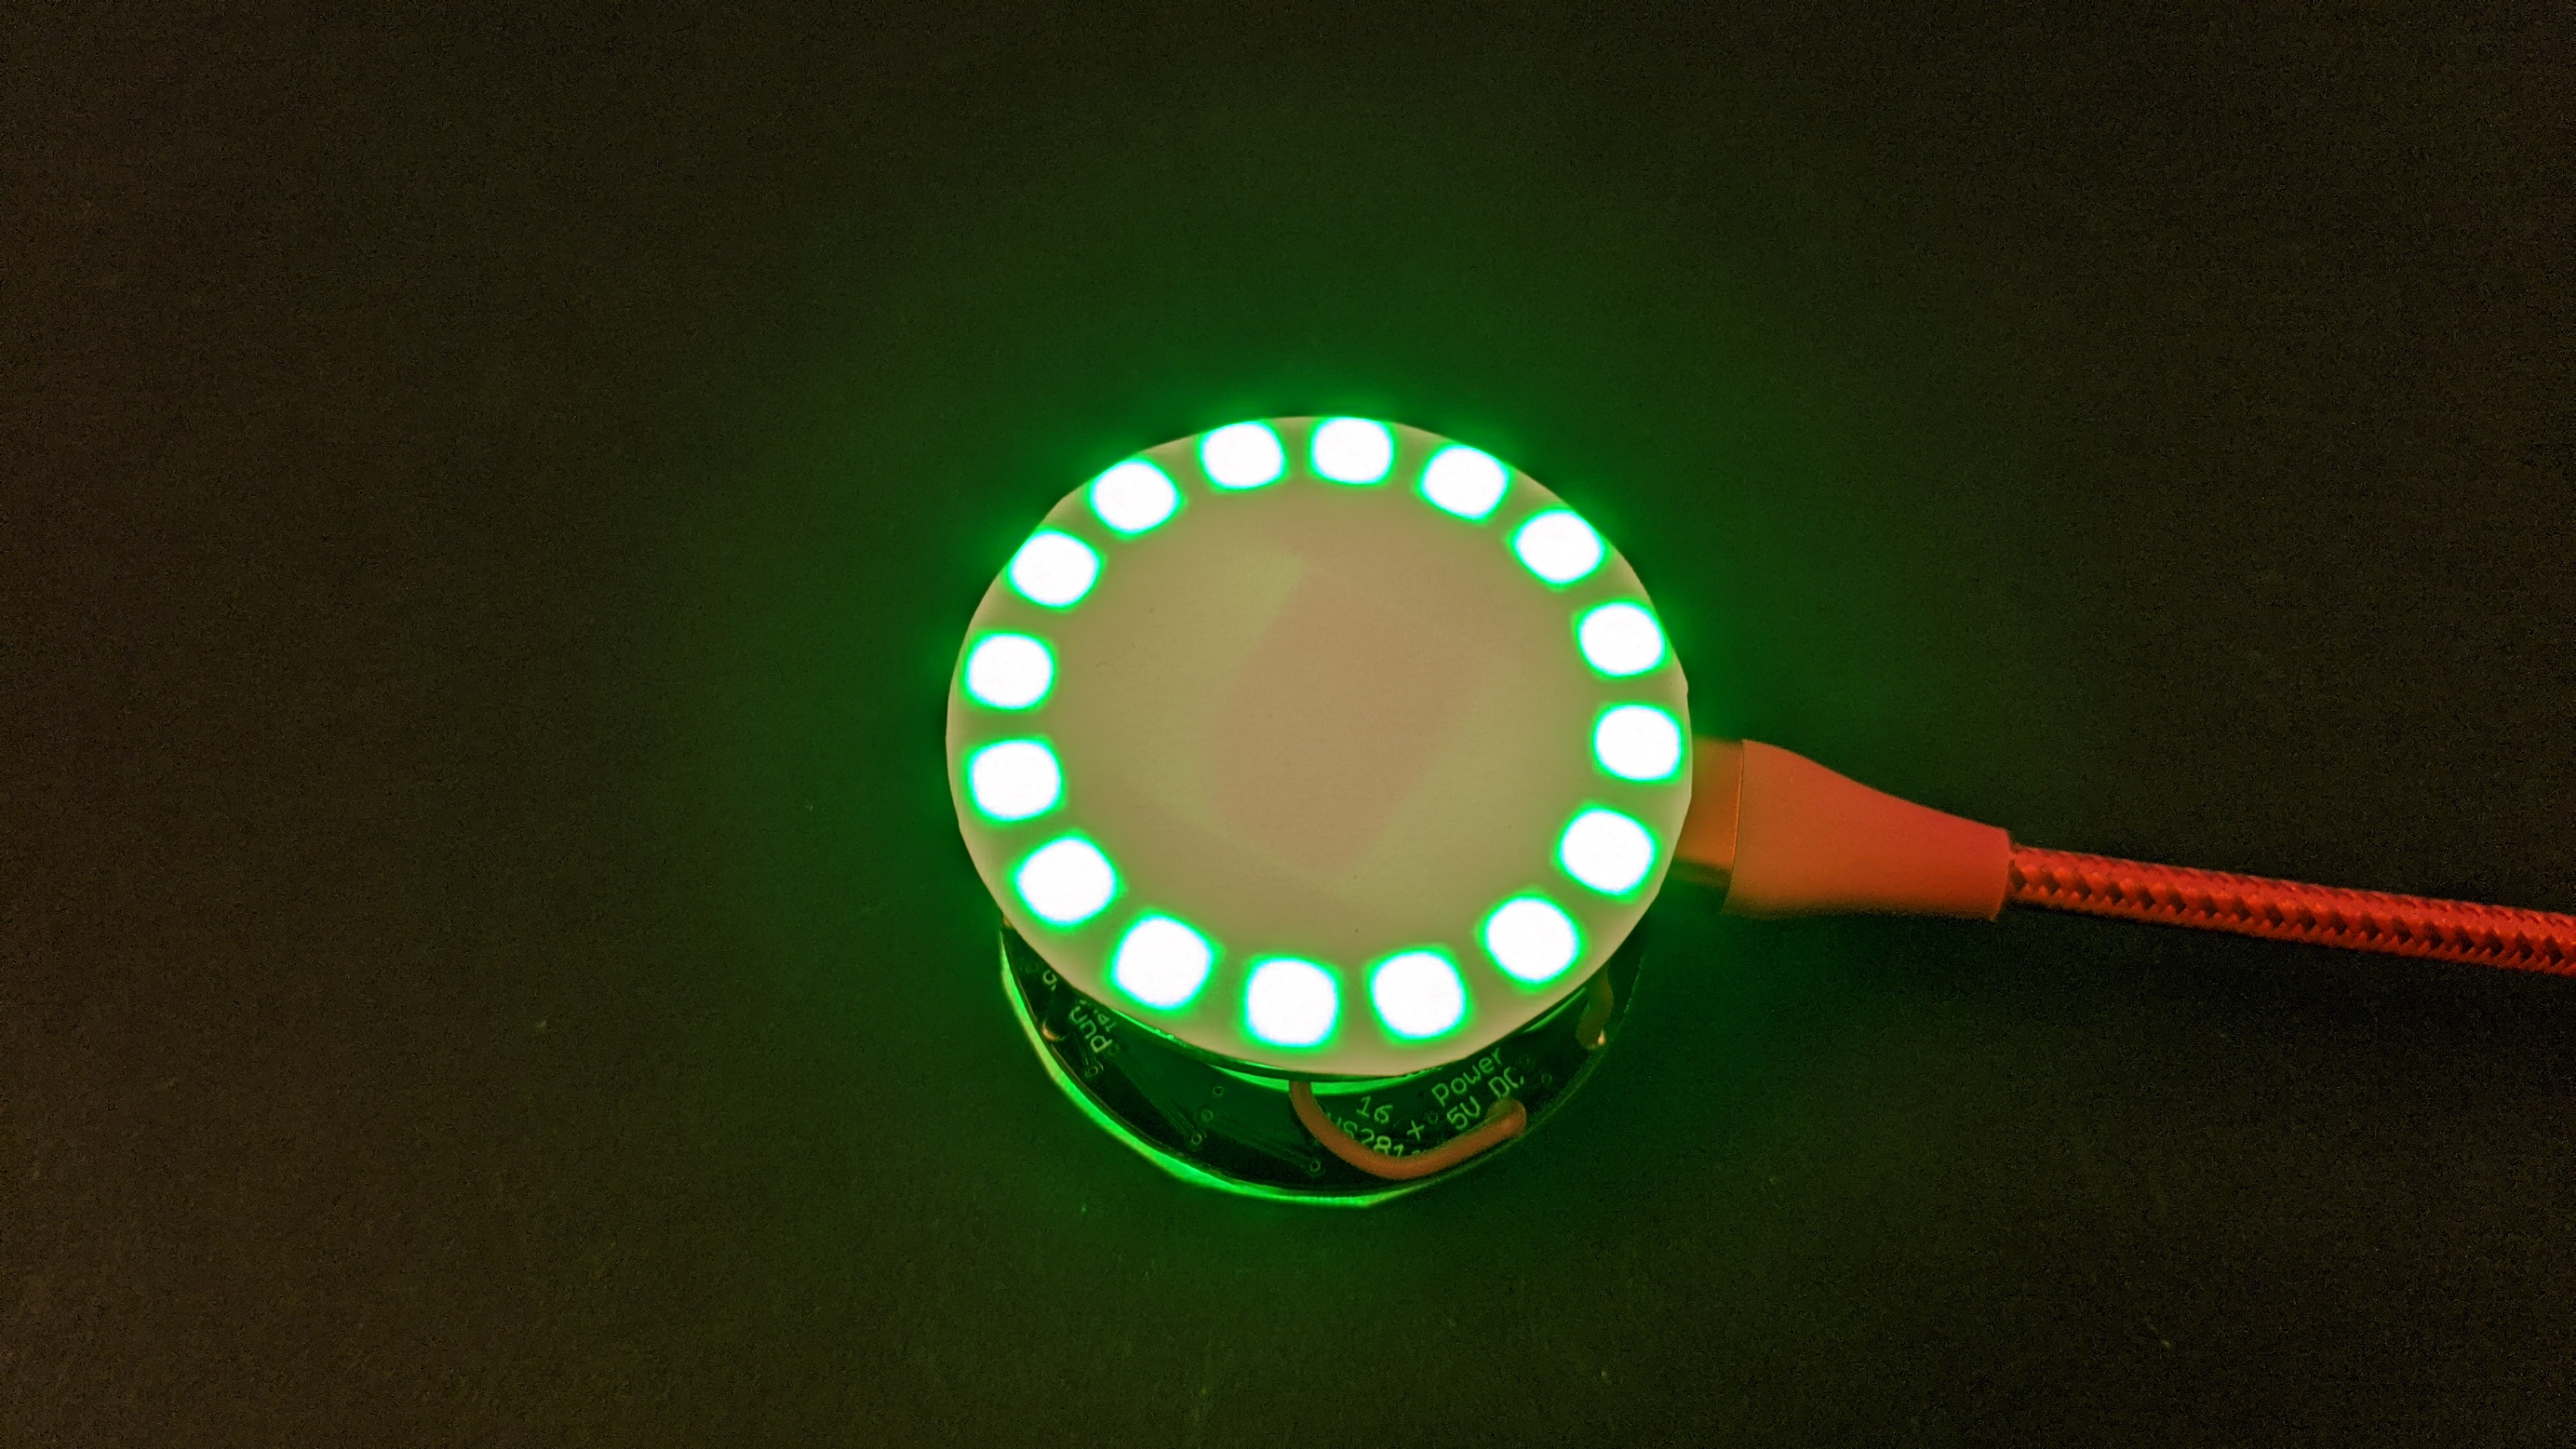 leds_QT_Py_Timer_activity_reminder.jpg